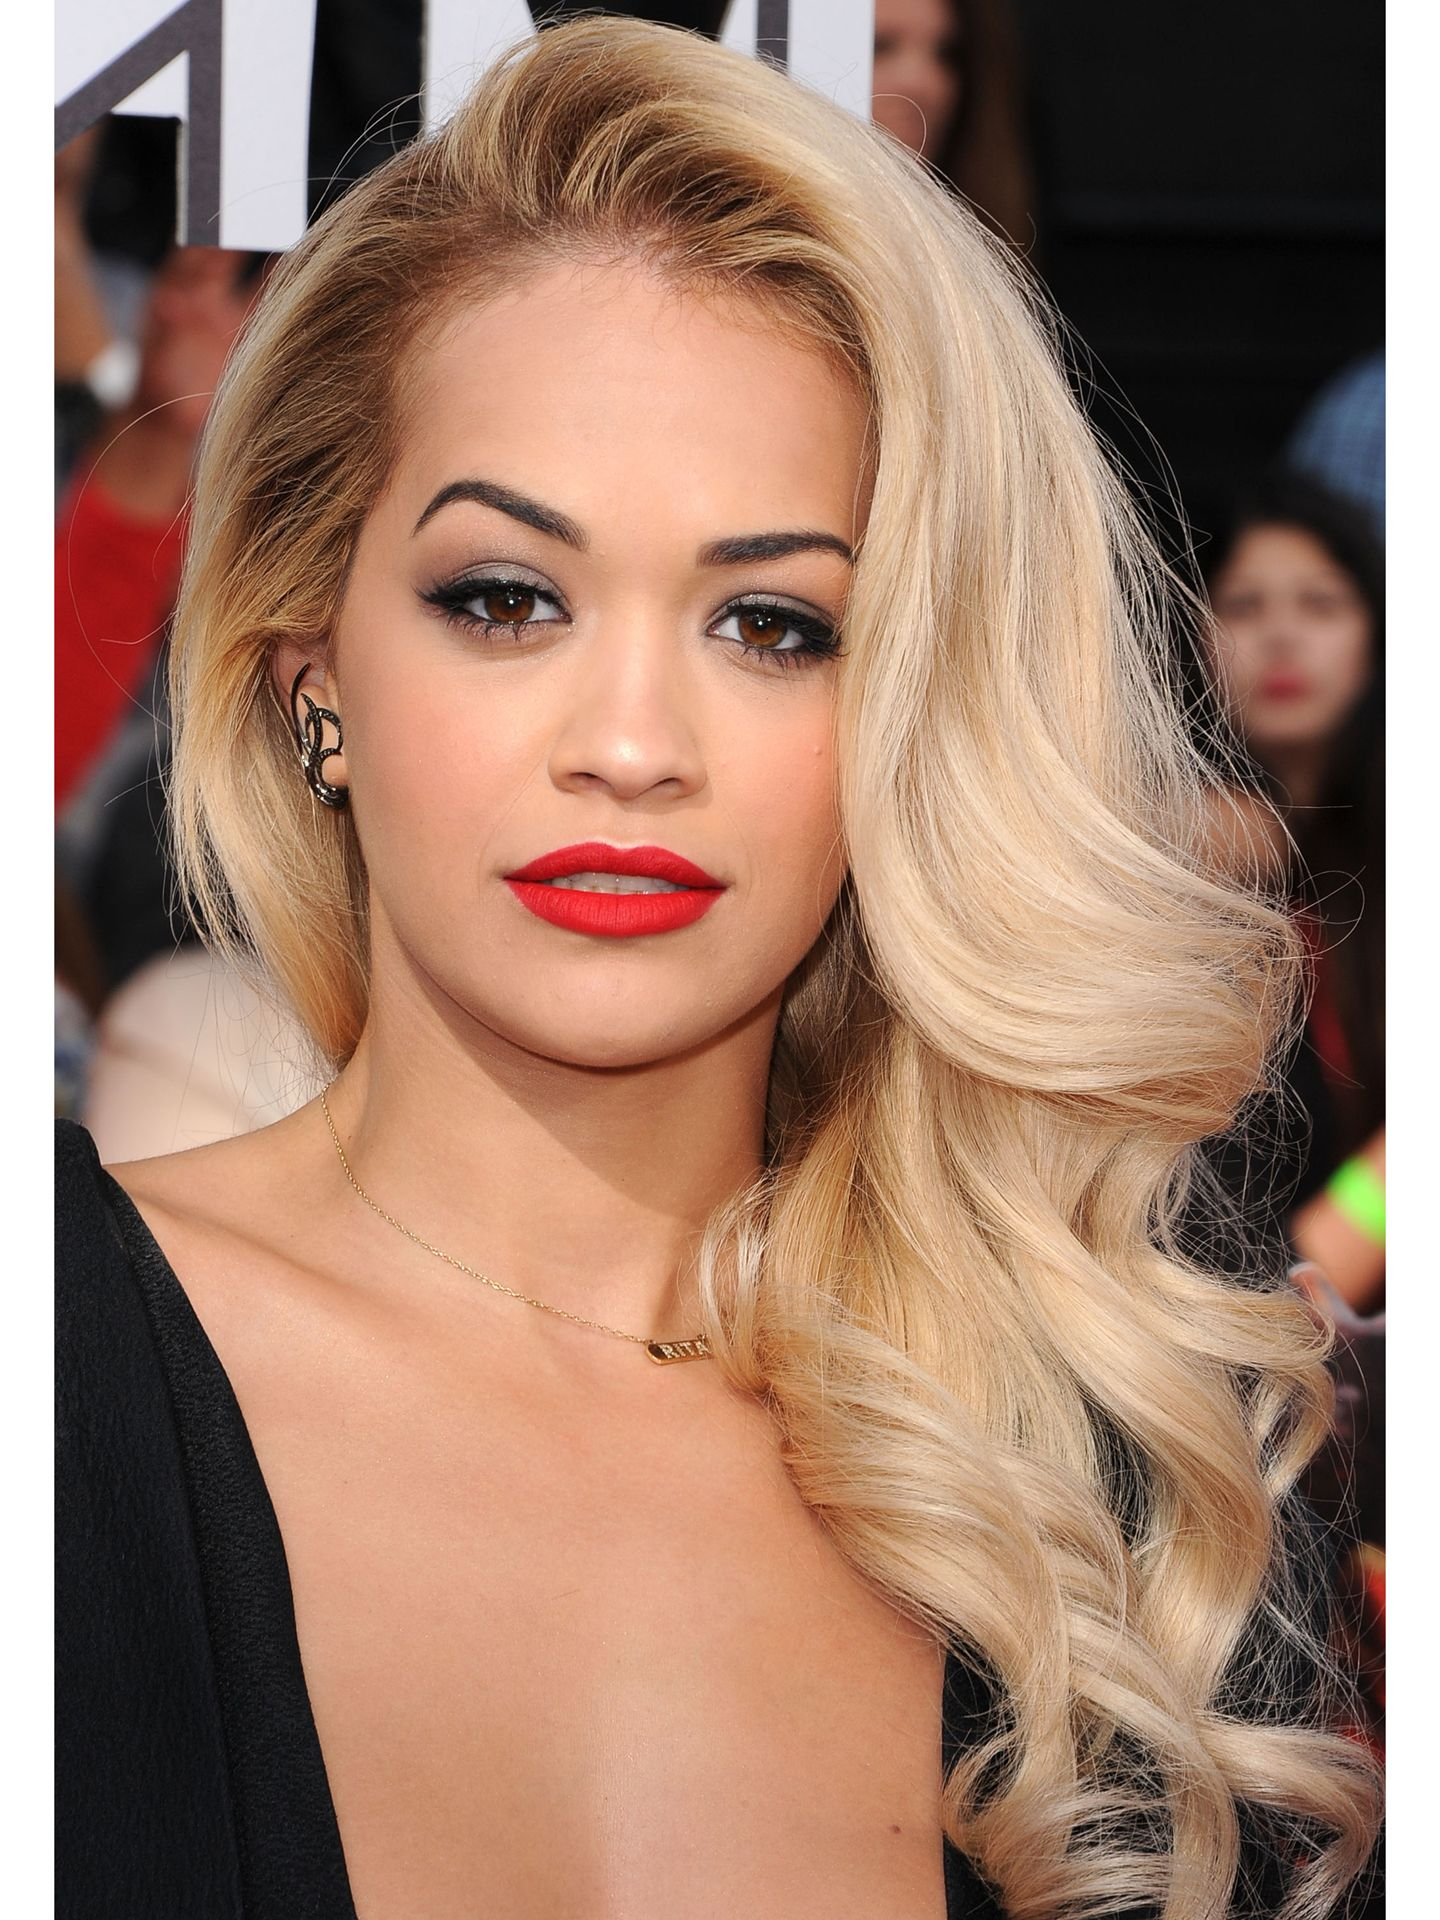 Ritaora Haircut In X Factor Show 2020 Hair Color Name 5